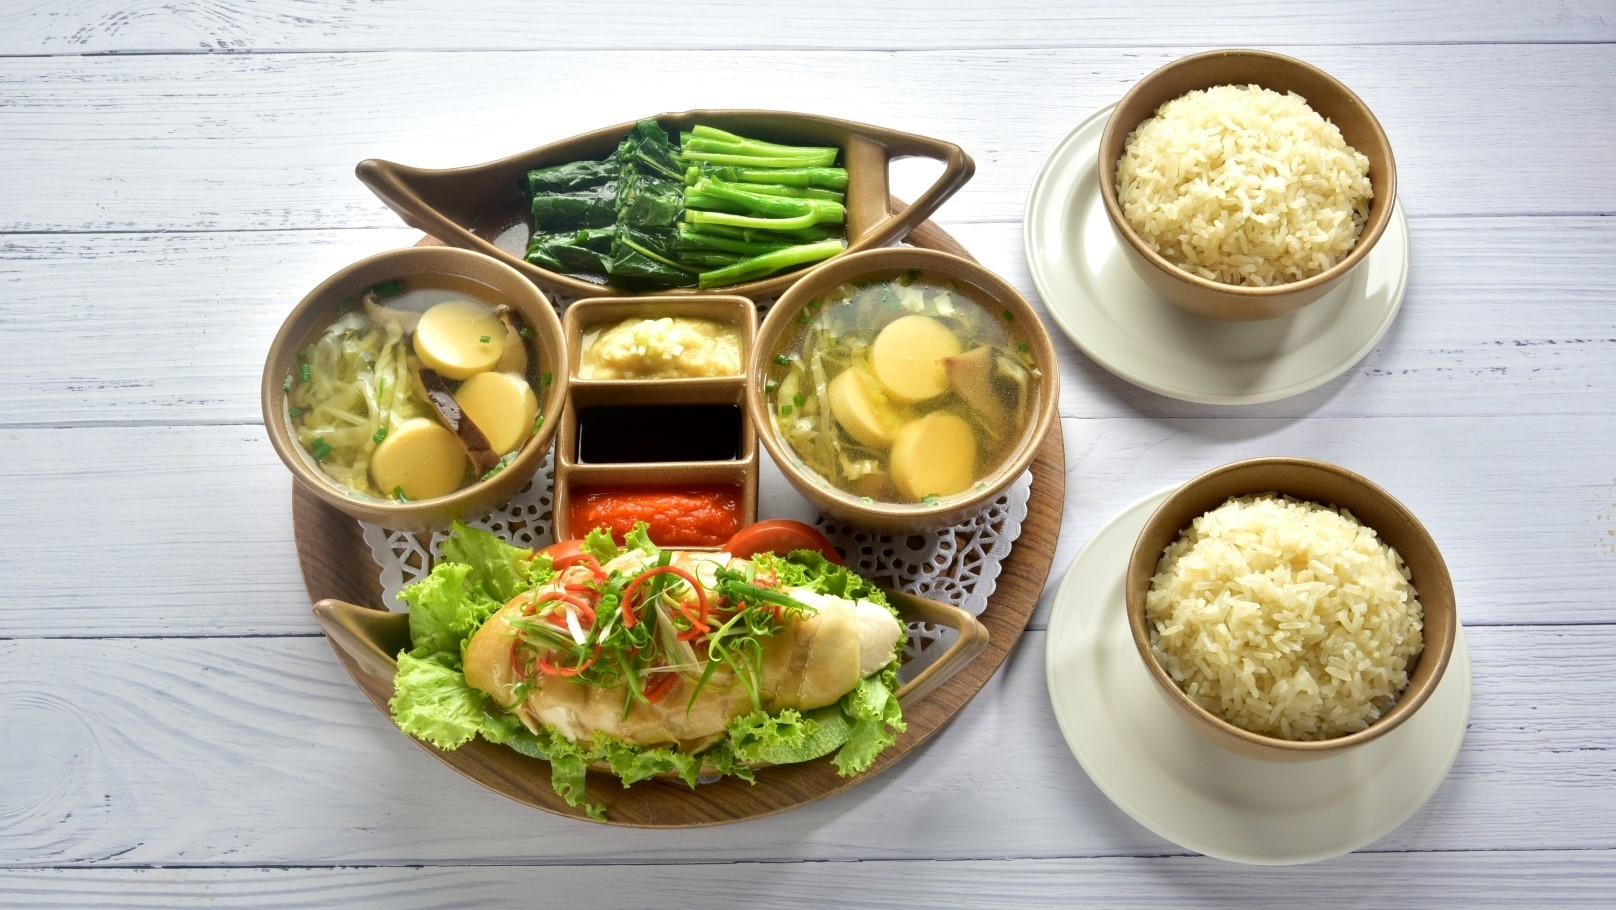 Hainese Chicken Rice from Hard Rock Cafe Bangkok in Siam Square Soi 11, Bangkok